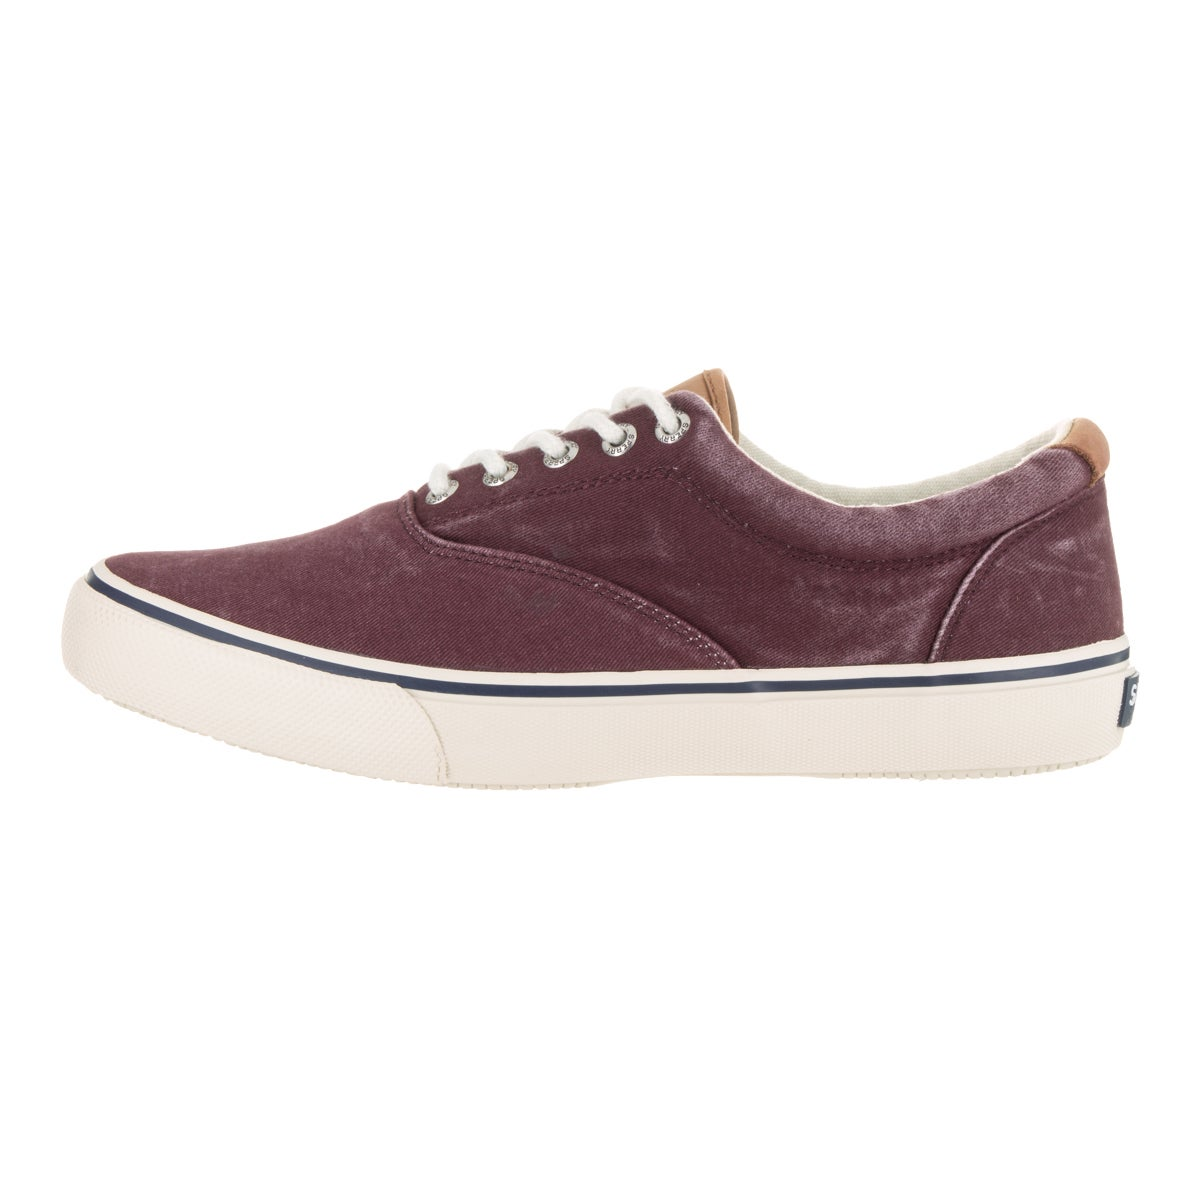 1ade49984720 Shop Sperry Men's Top-sider Striper II Cvo Casual Shoe - Free Shipping  Today - Overstock - 13471839